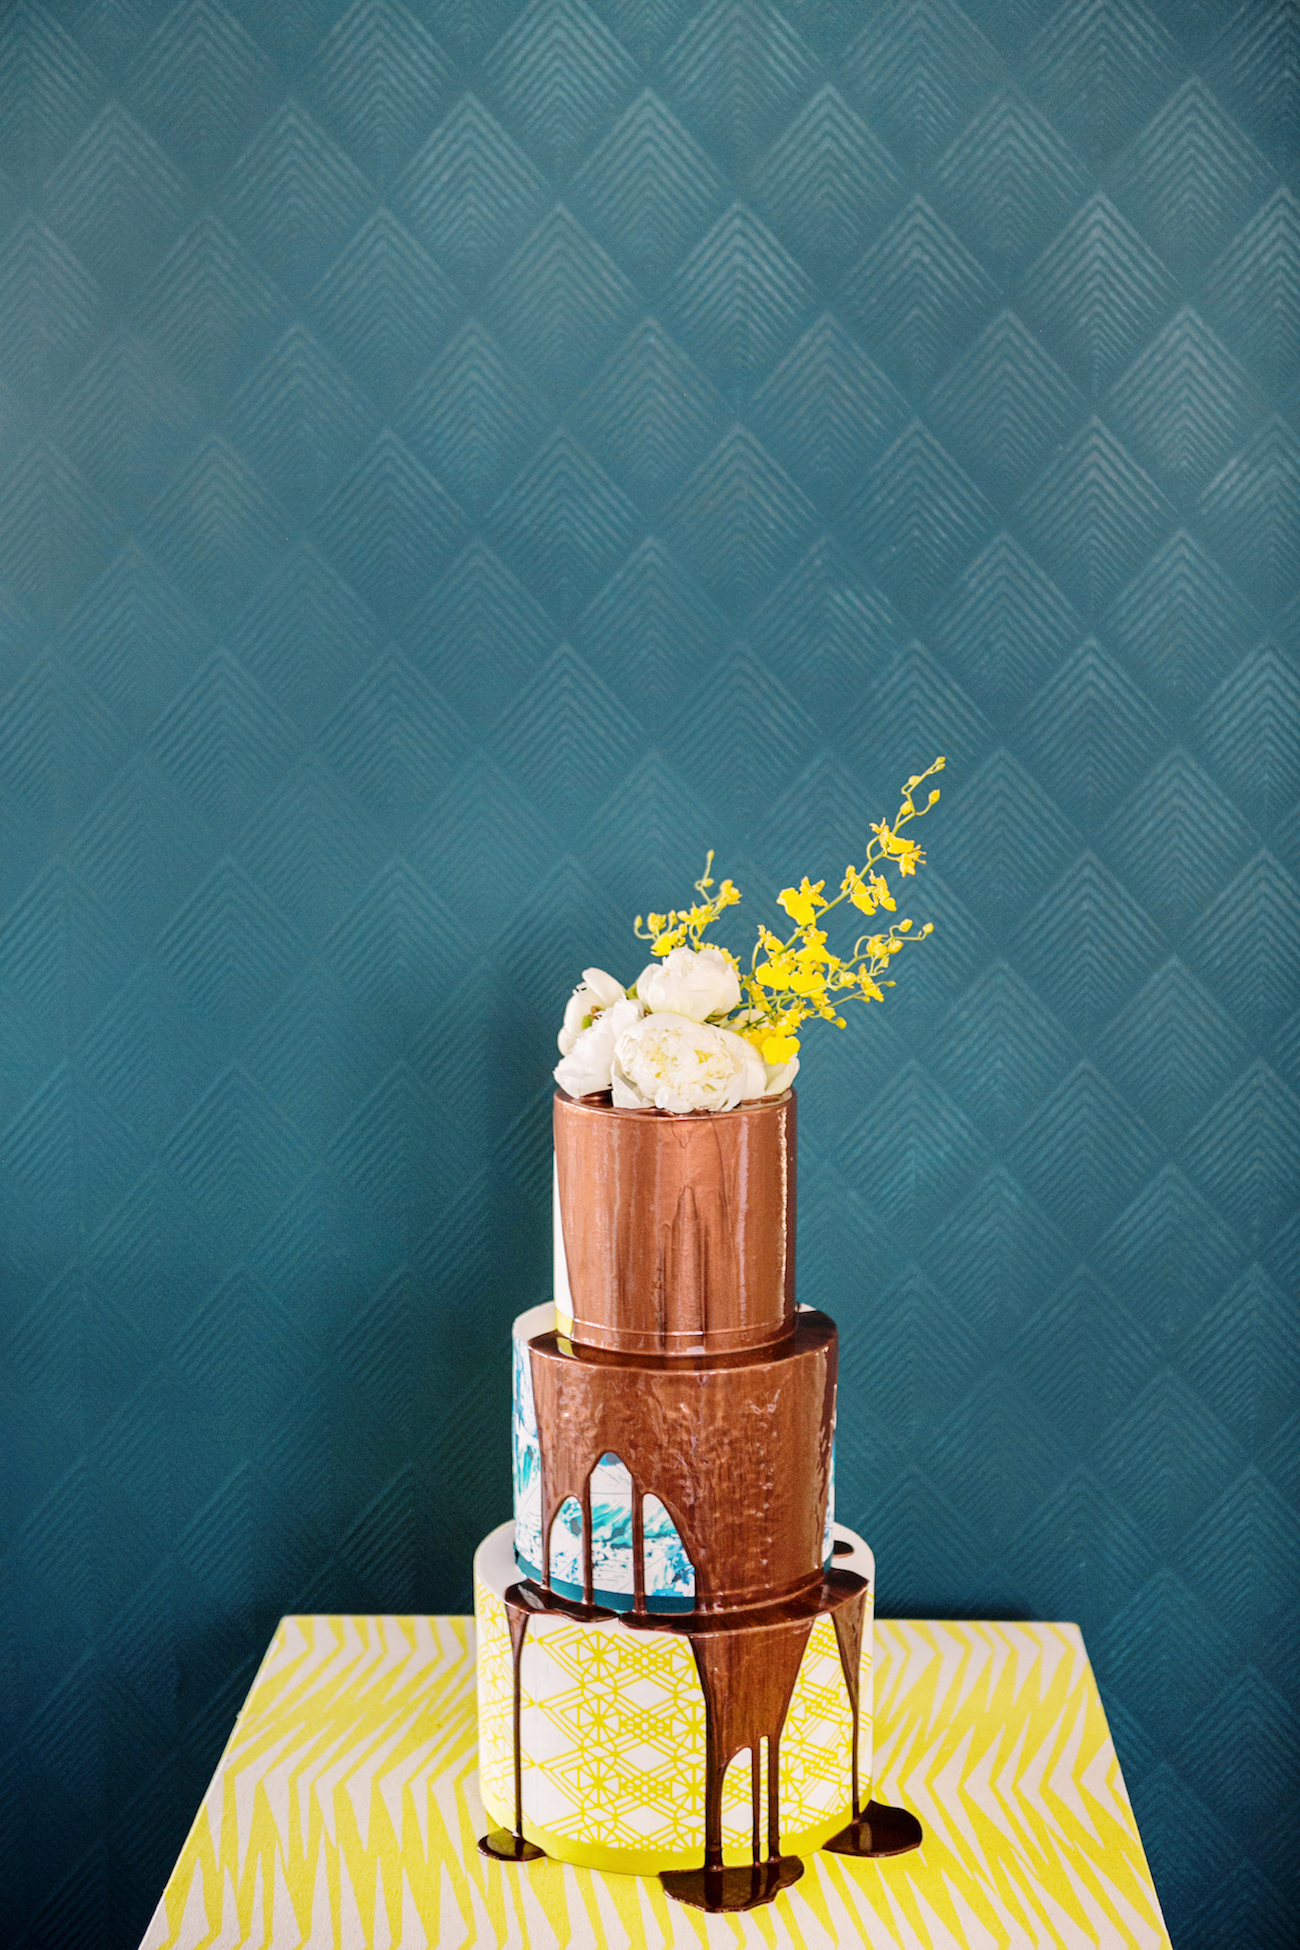 Copper Drip Cake | Credit: Wedding Concepts & Tyme Photography